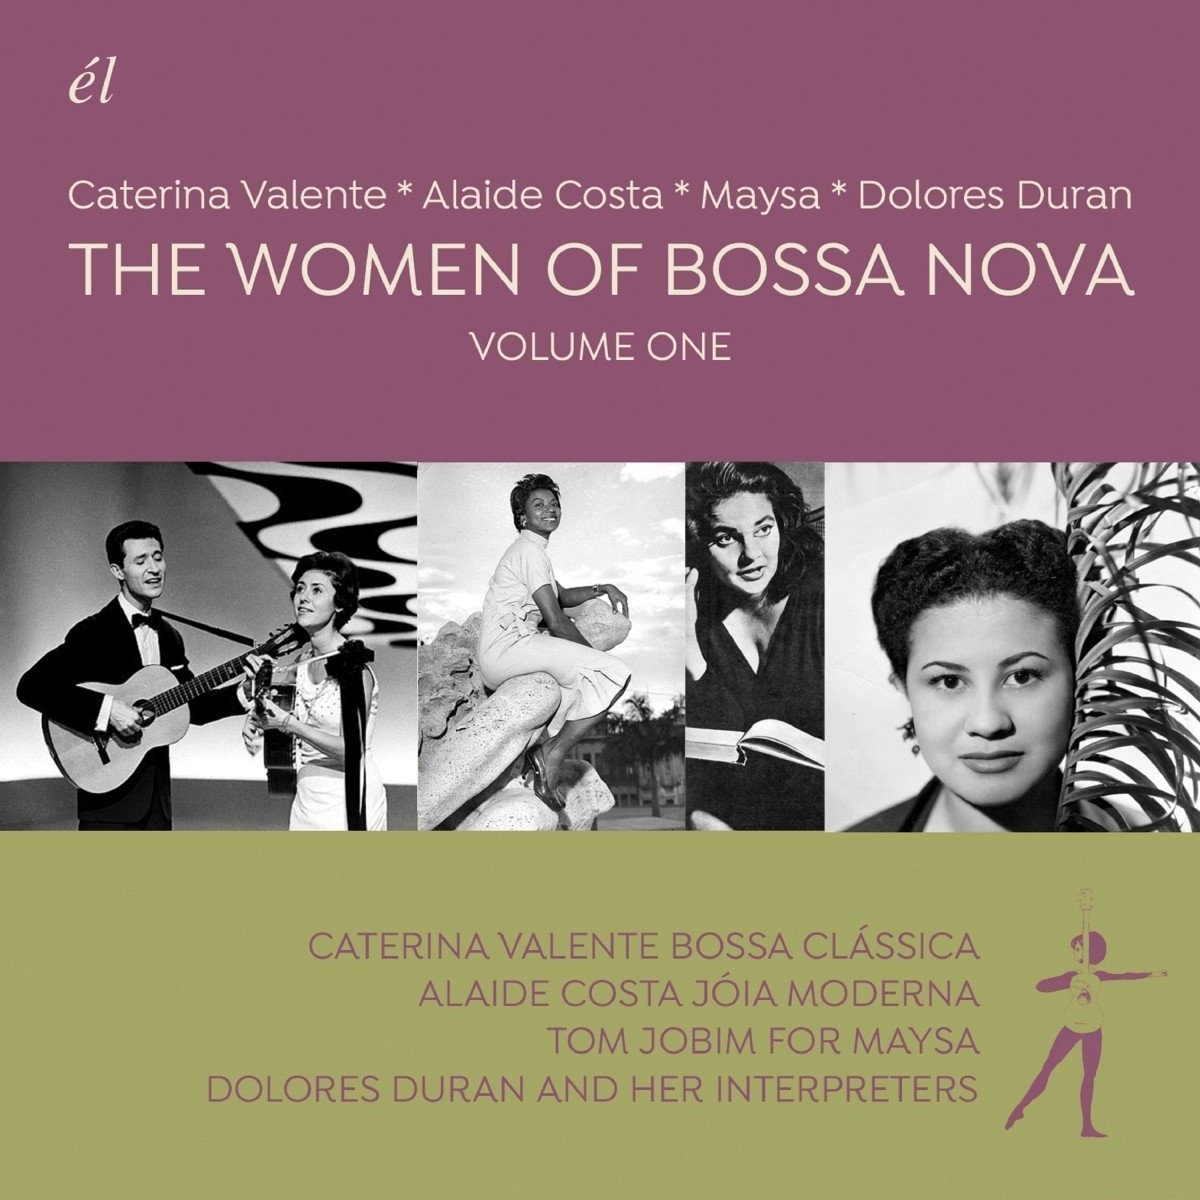 catalog 12 17 WomenBossaNova